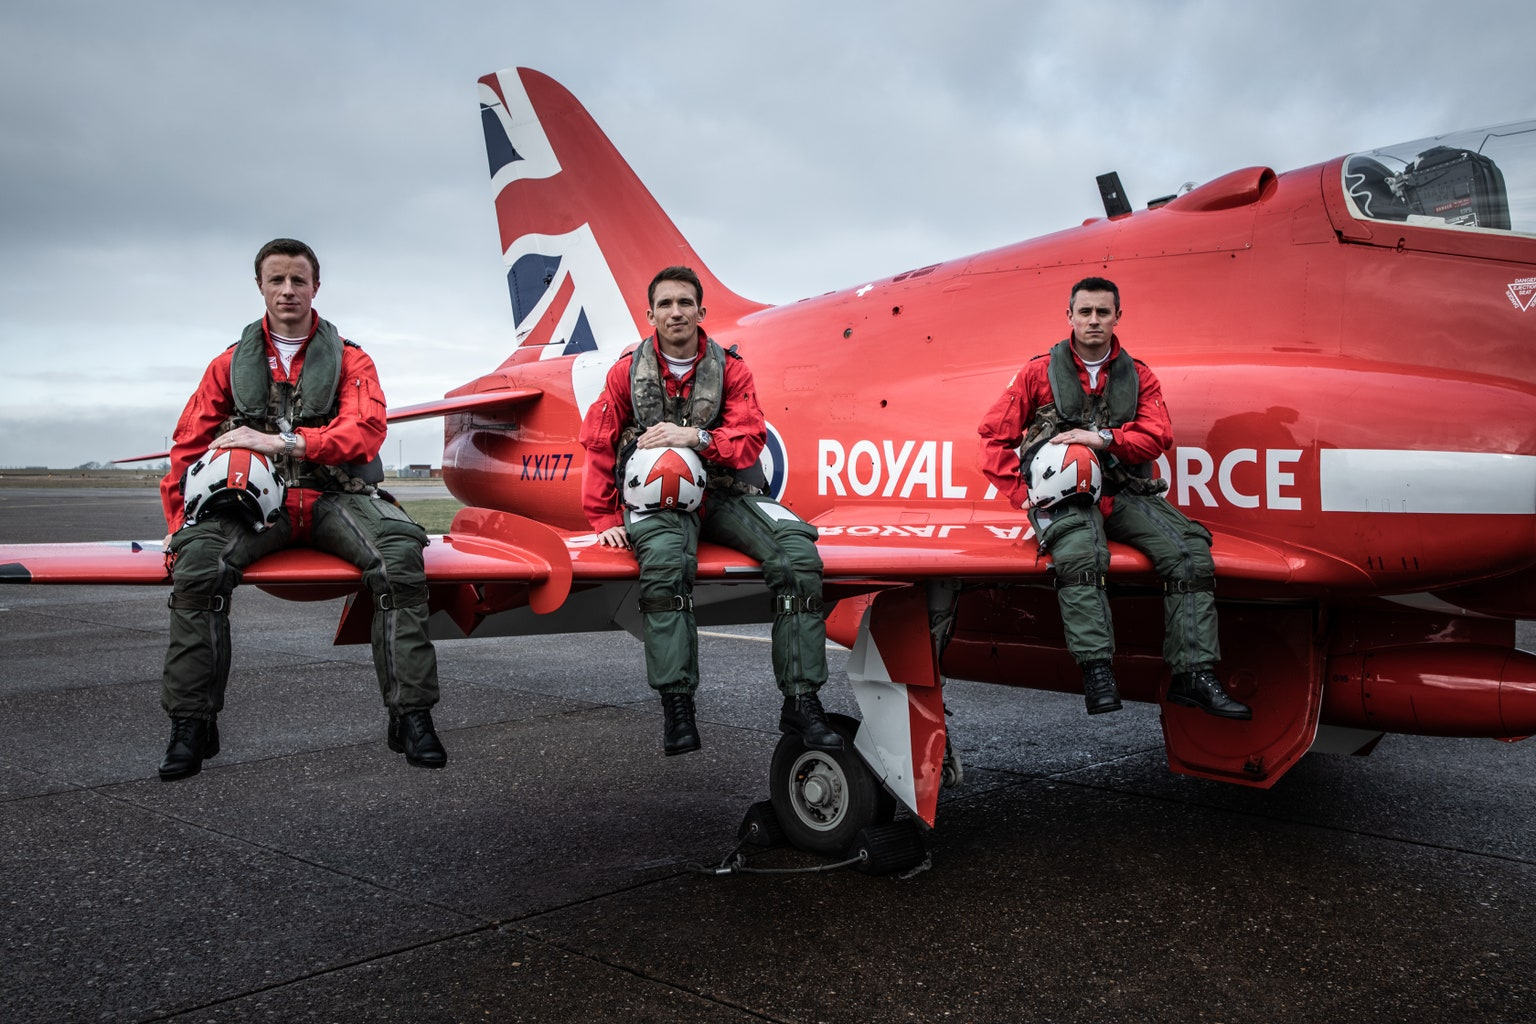 Red Arrows and Breitling